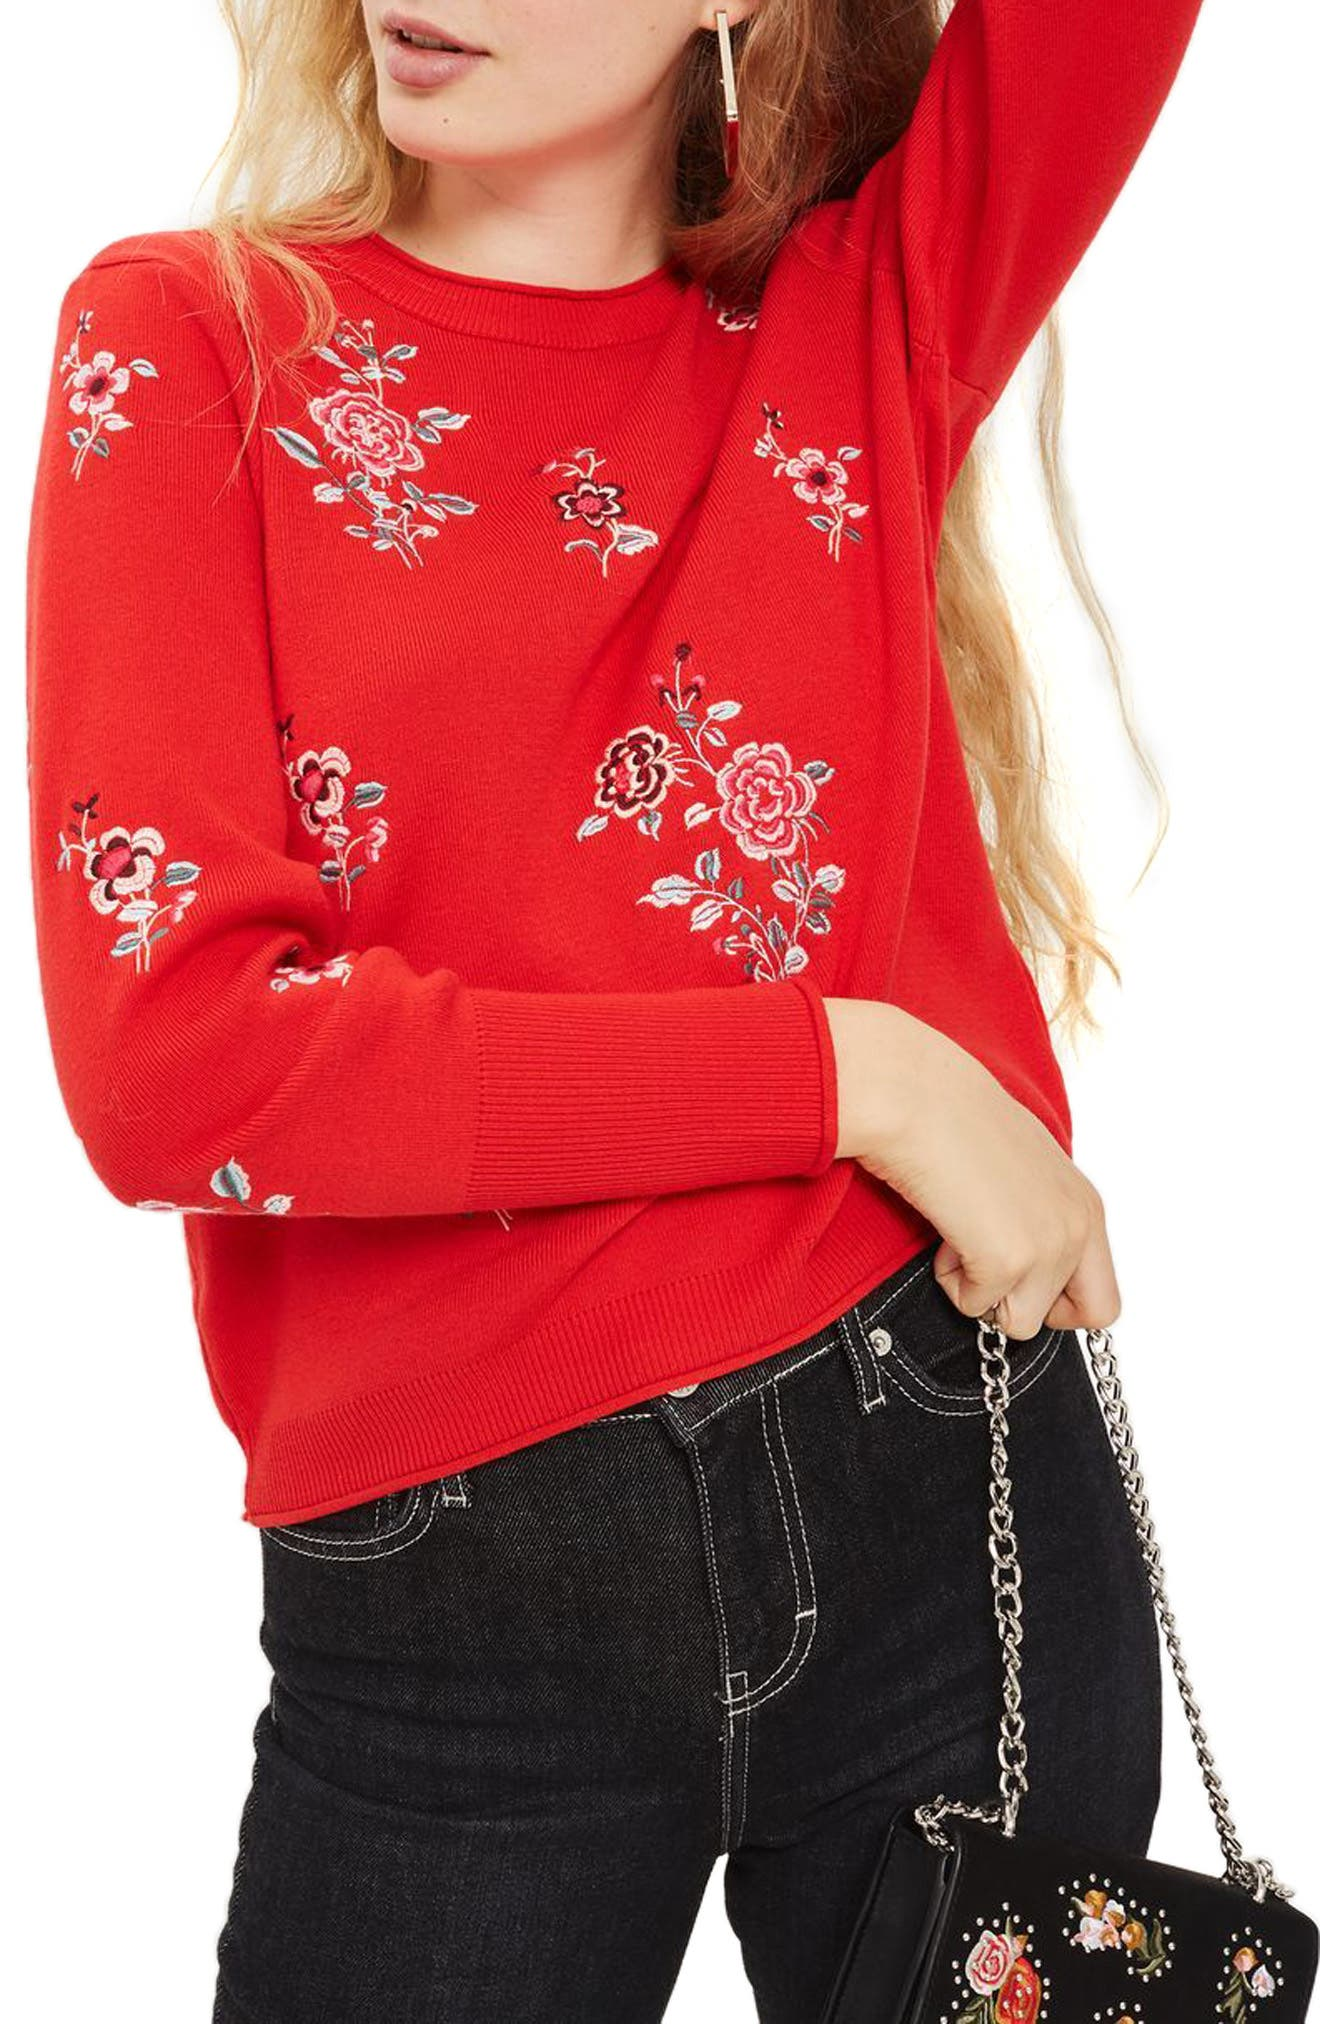 Topshop China Floral Embroidered Sweater